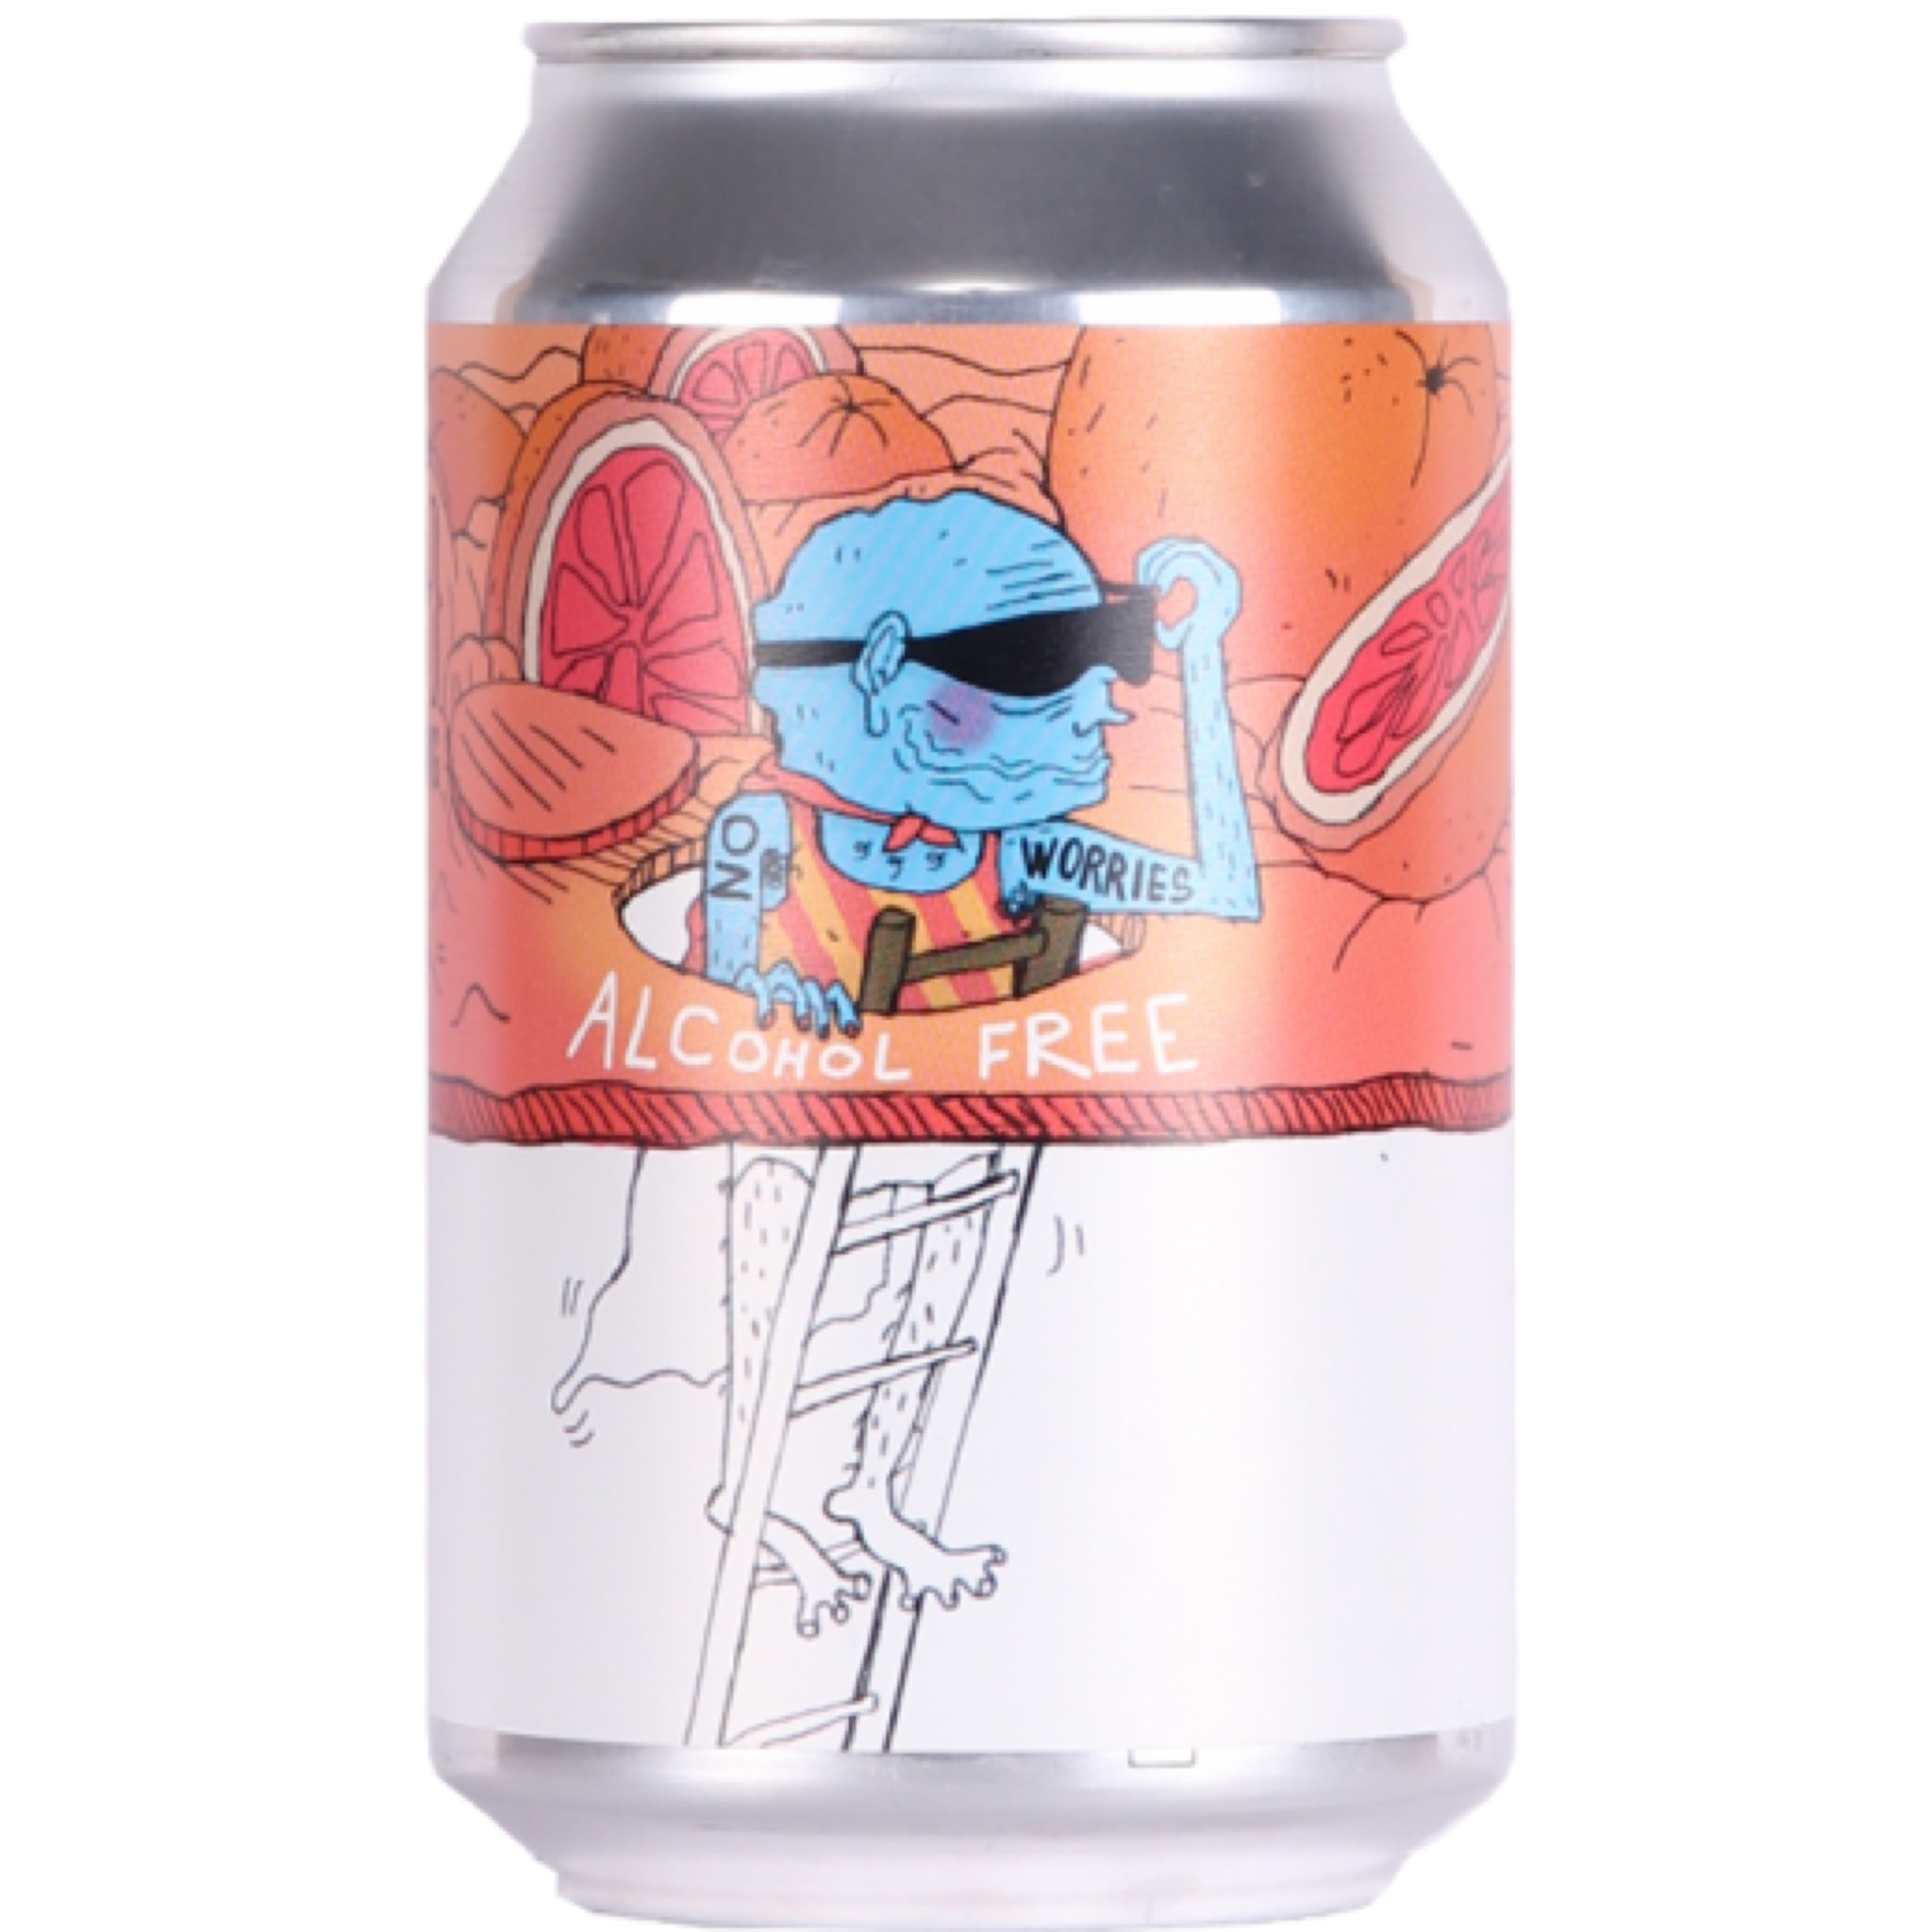 No Worries Grapefruit Alcohol Free IPA 0.5% 330ml Lervig Brewing